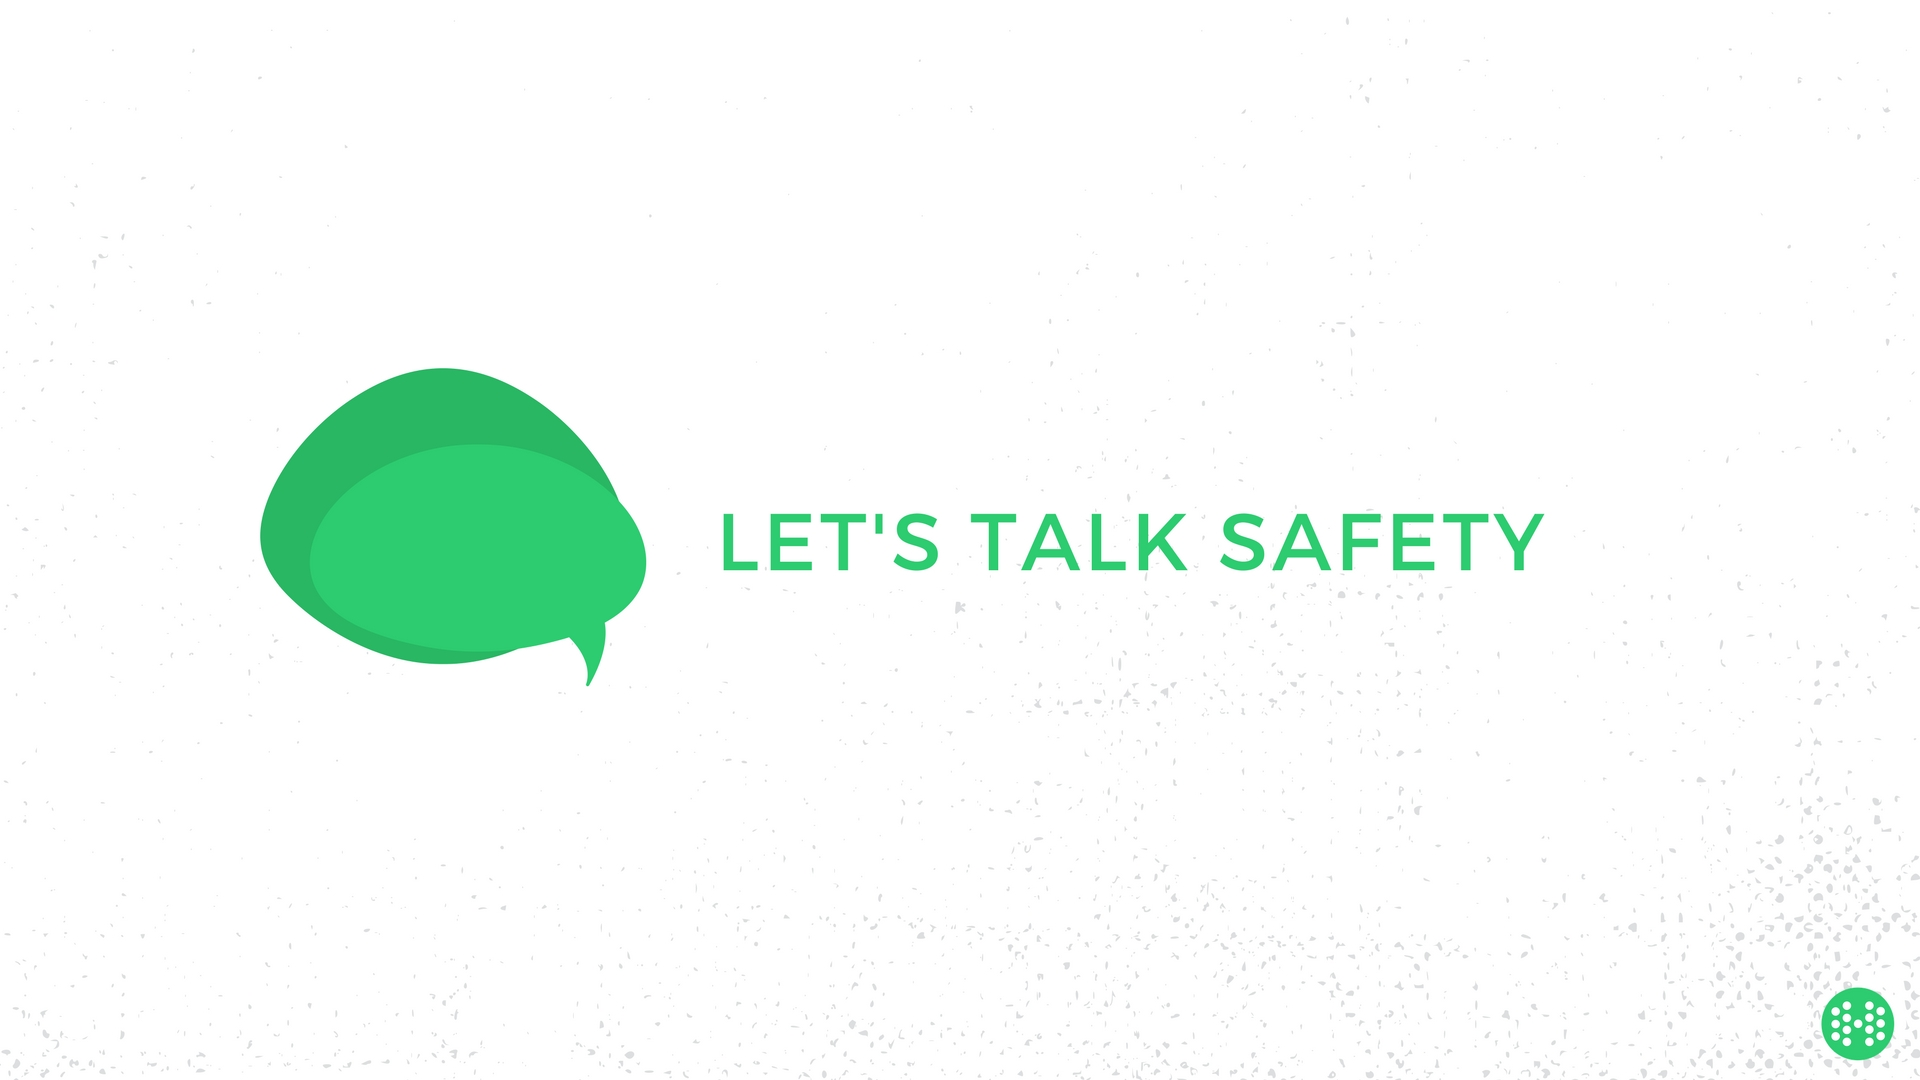 talk safety wallpaper